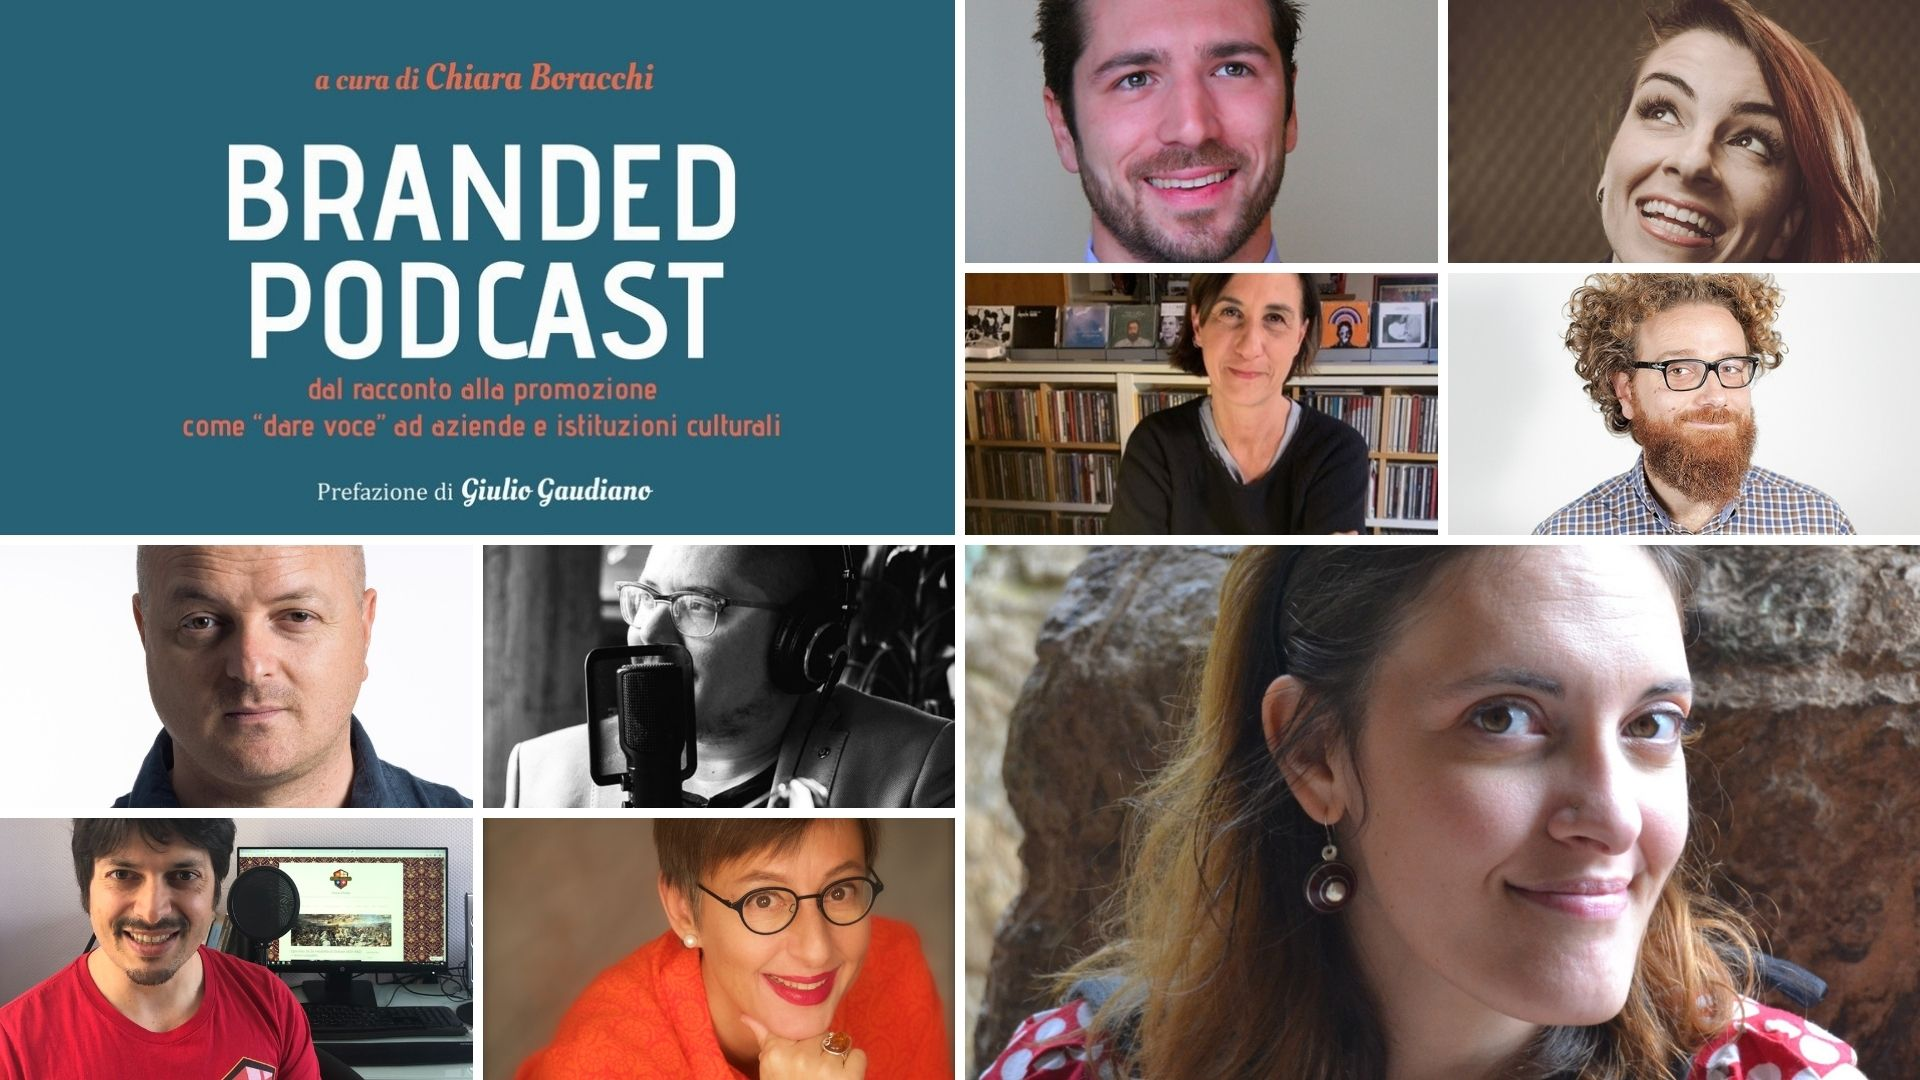 Branded Podcast authors